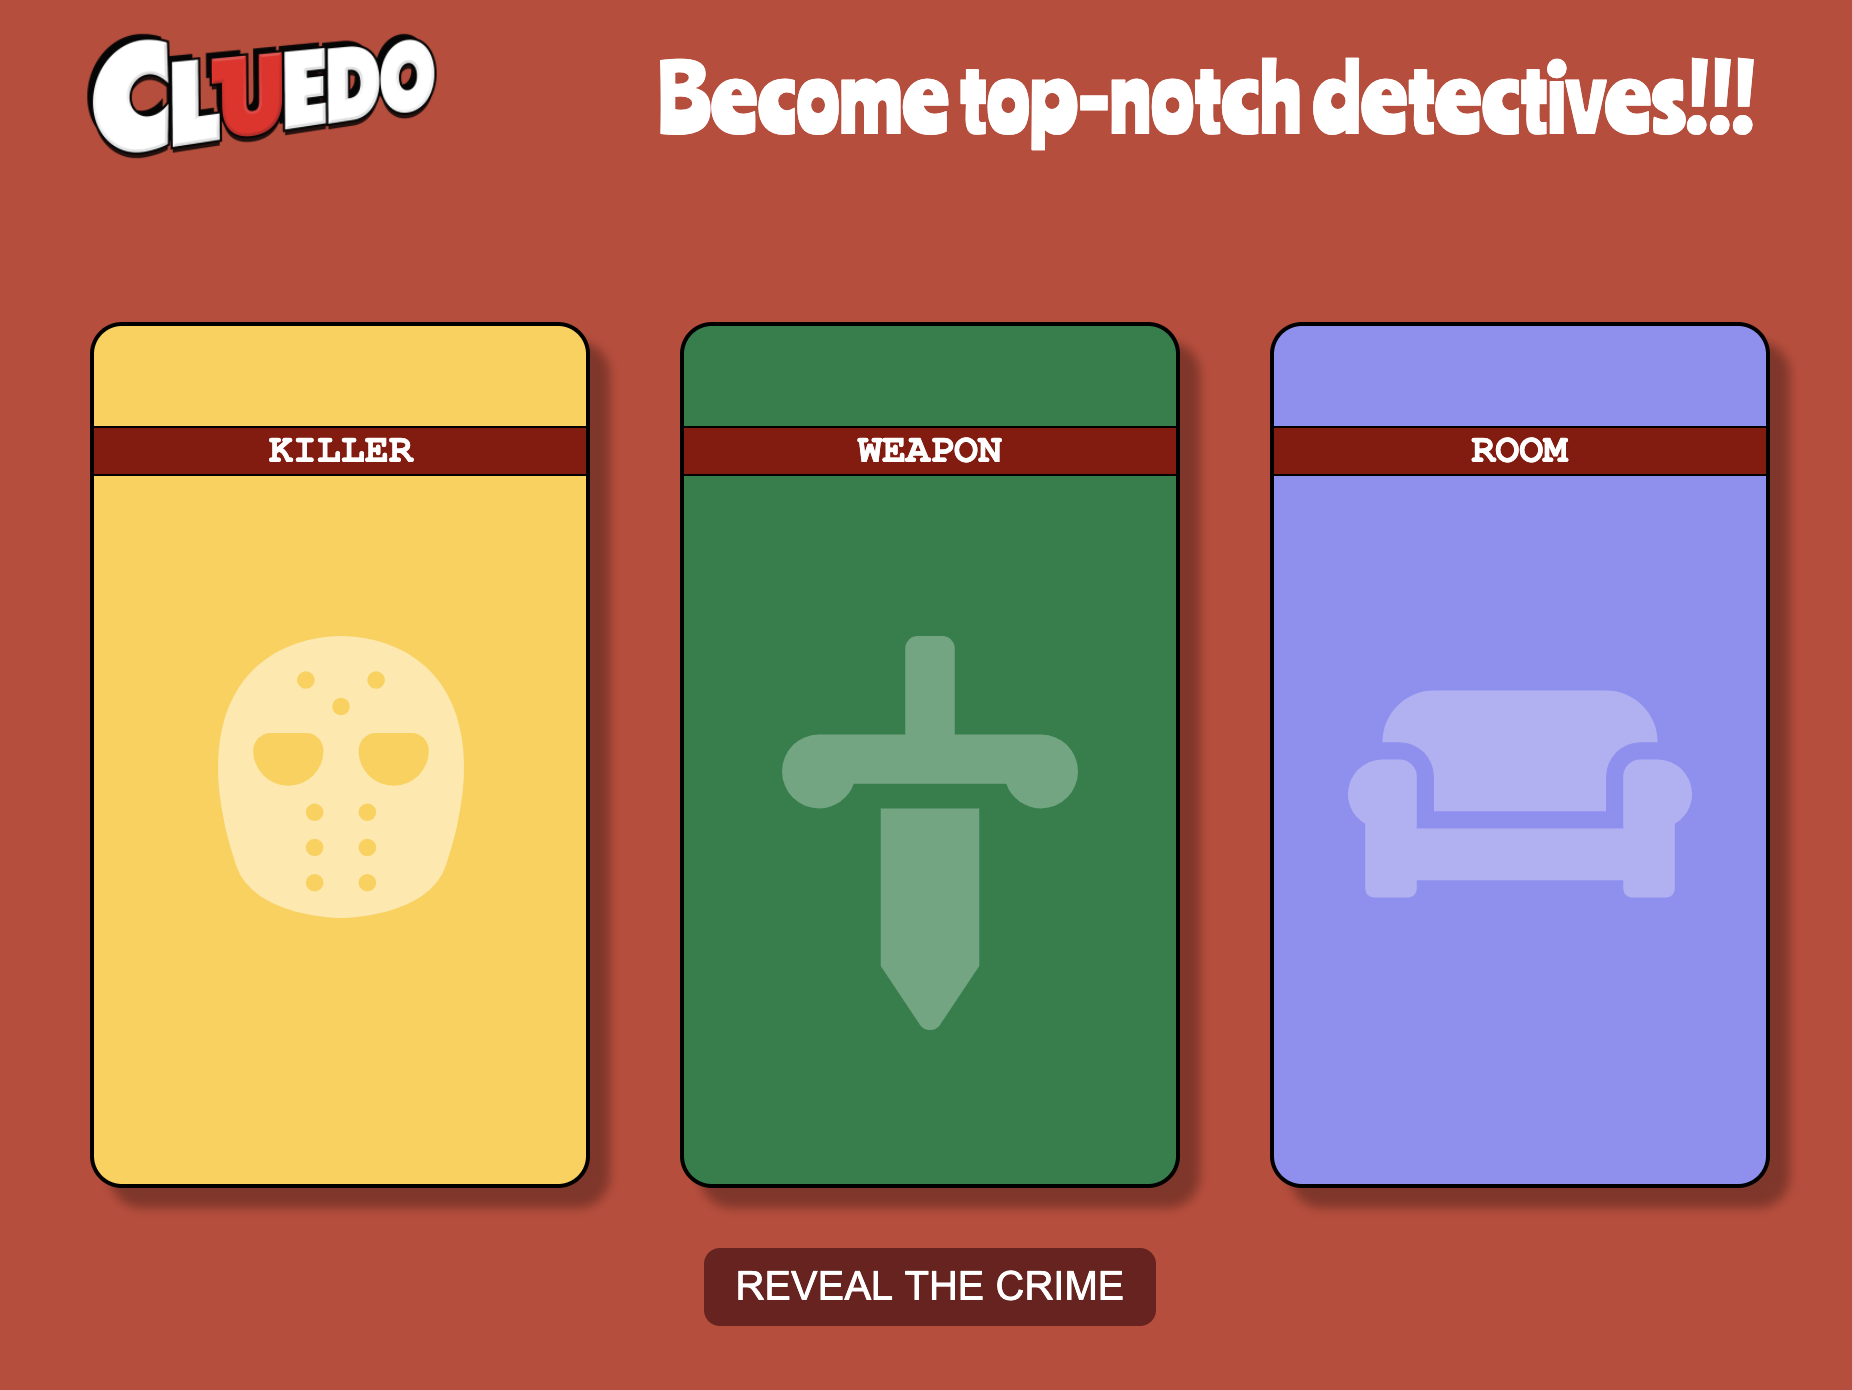 Image of cluedo game